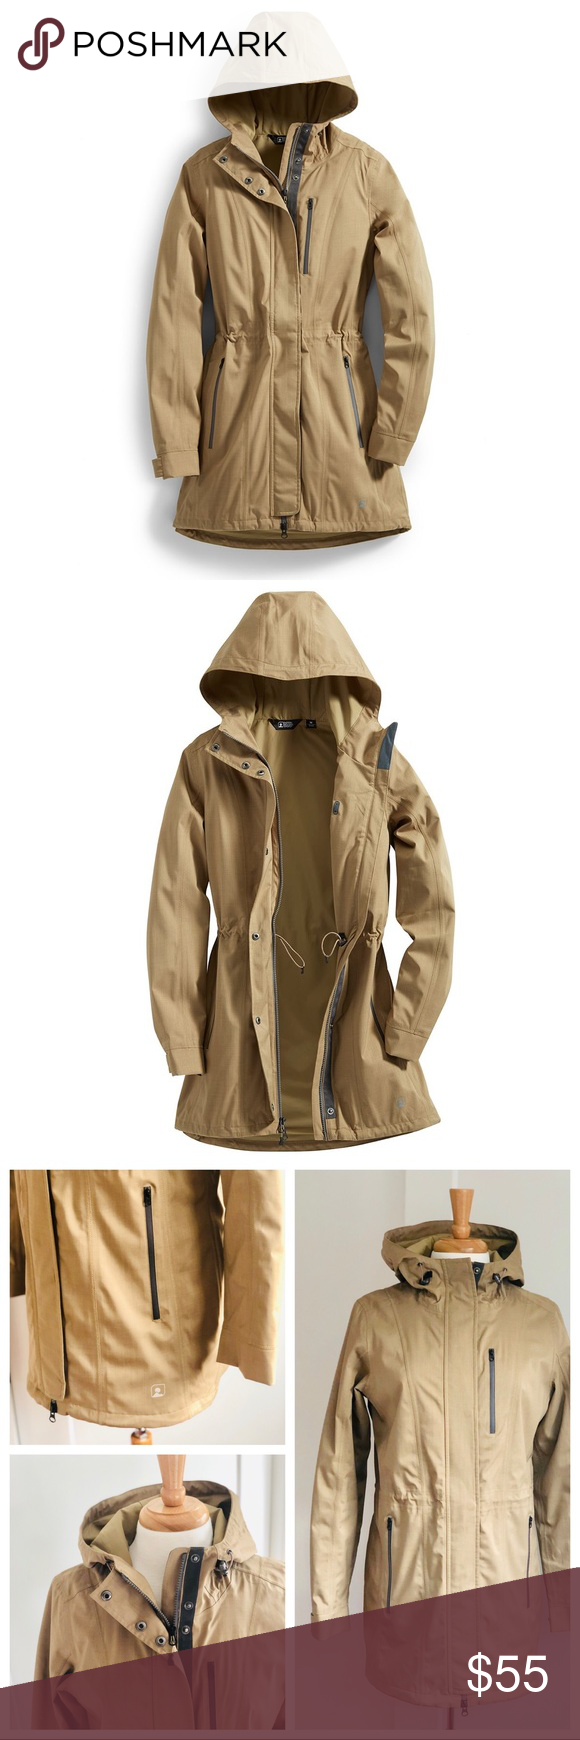 296eee03c Eastern Mountain Sports EMS Mist Rain Trench szM Excellent, like new,  condition! Eastern